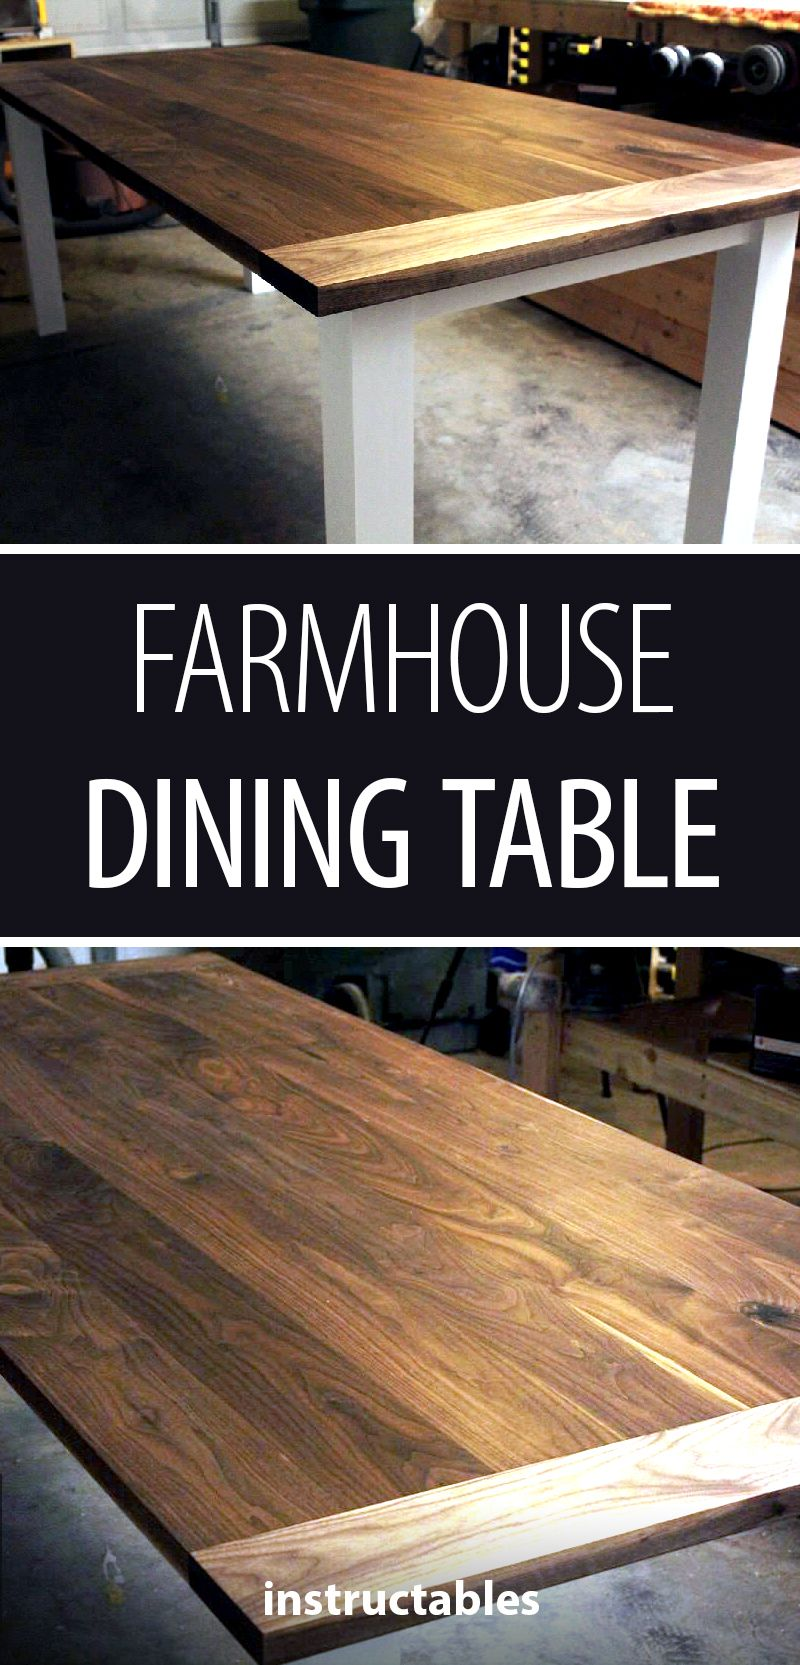 Farmhouse Dining Table Walnut and Alder Cool